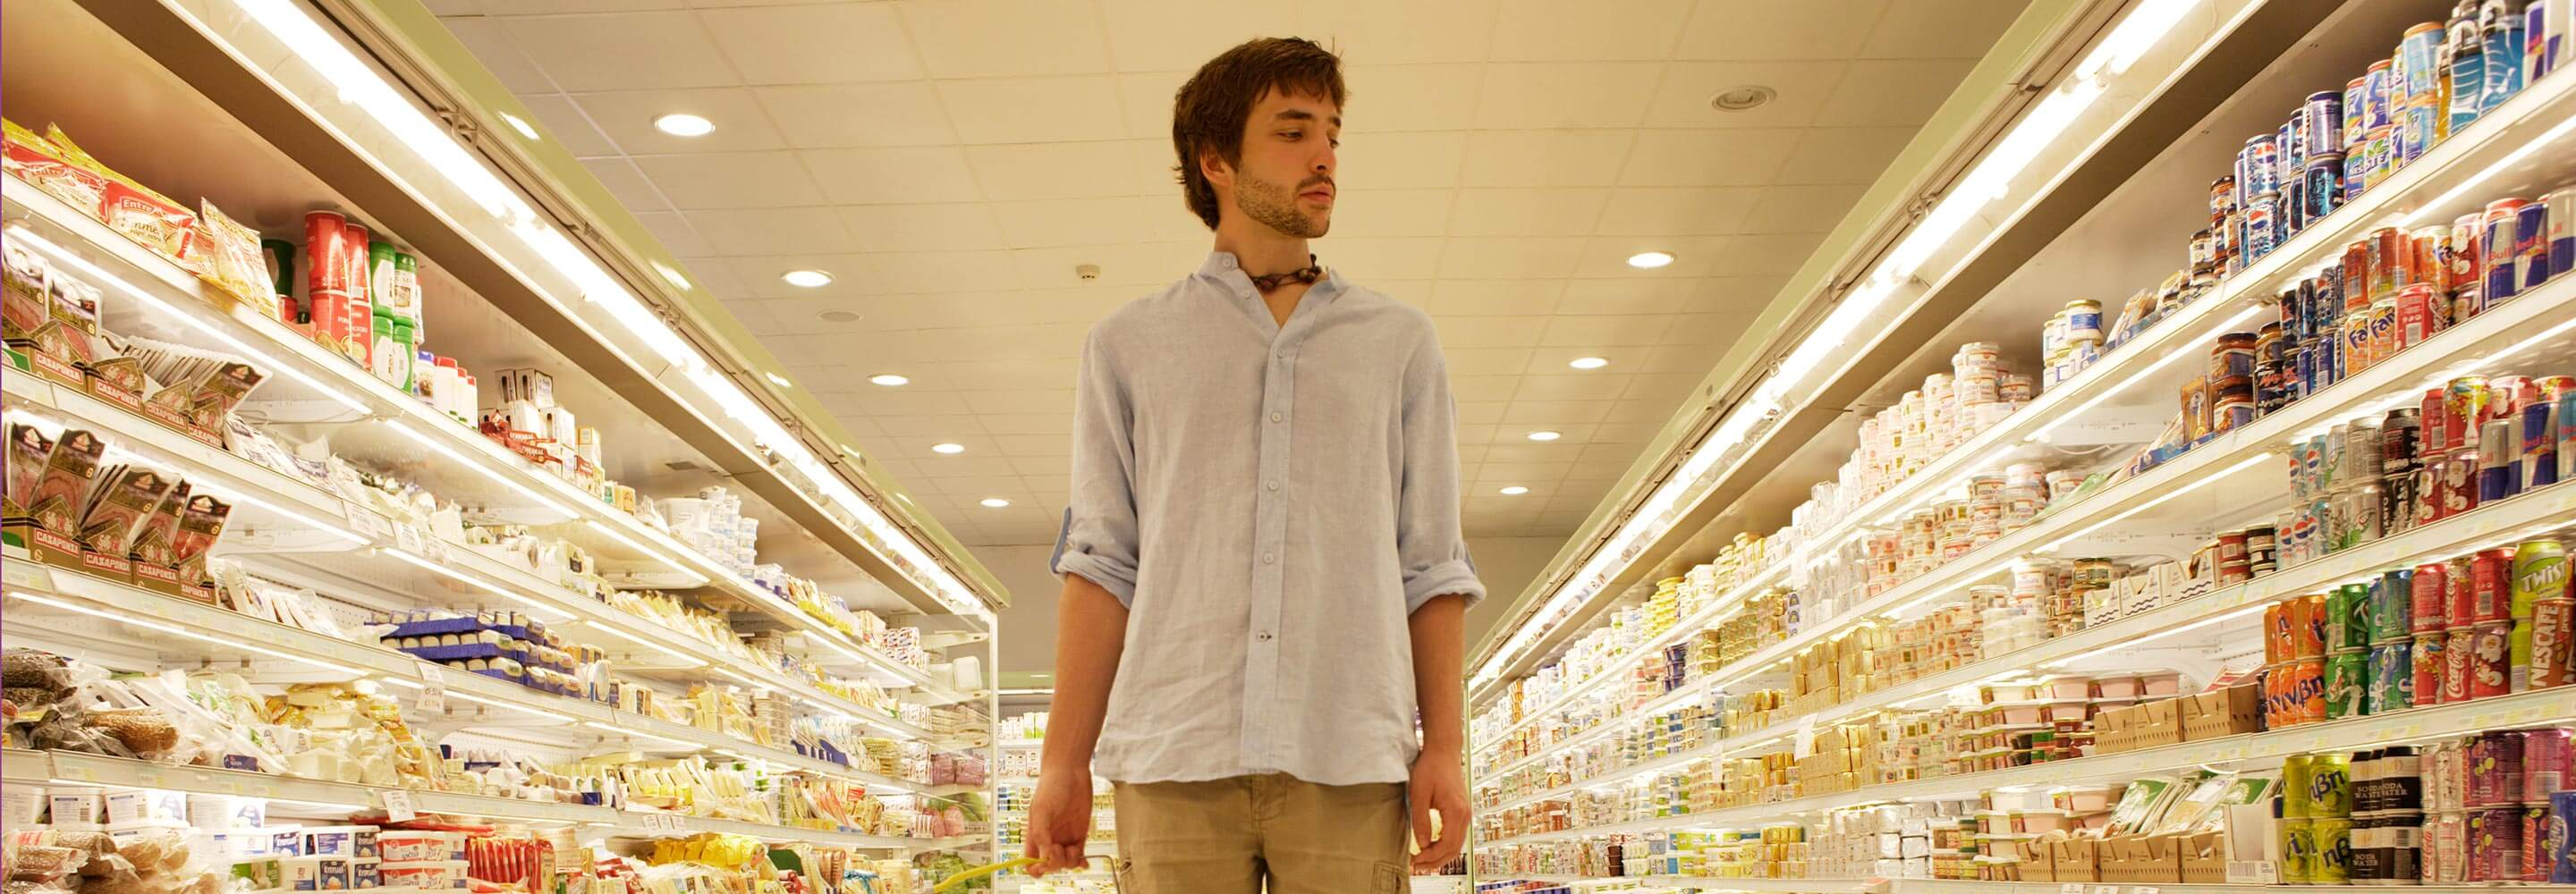 Man at the isle in the supermarket deciding what to buy